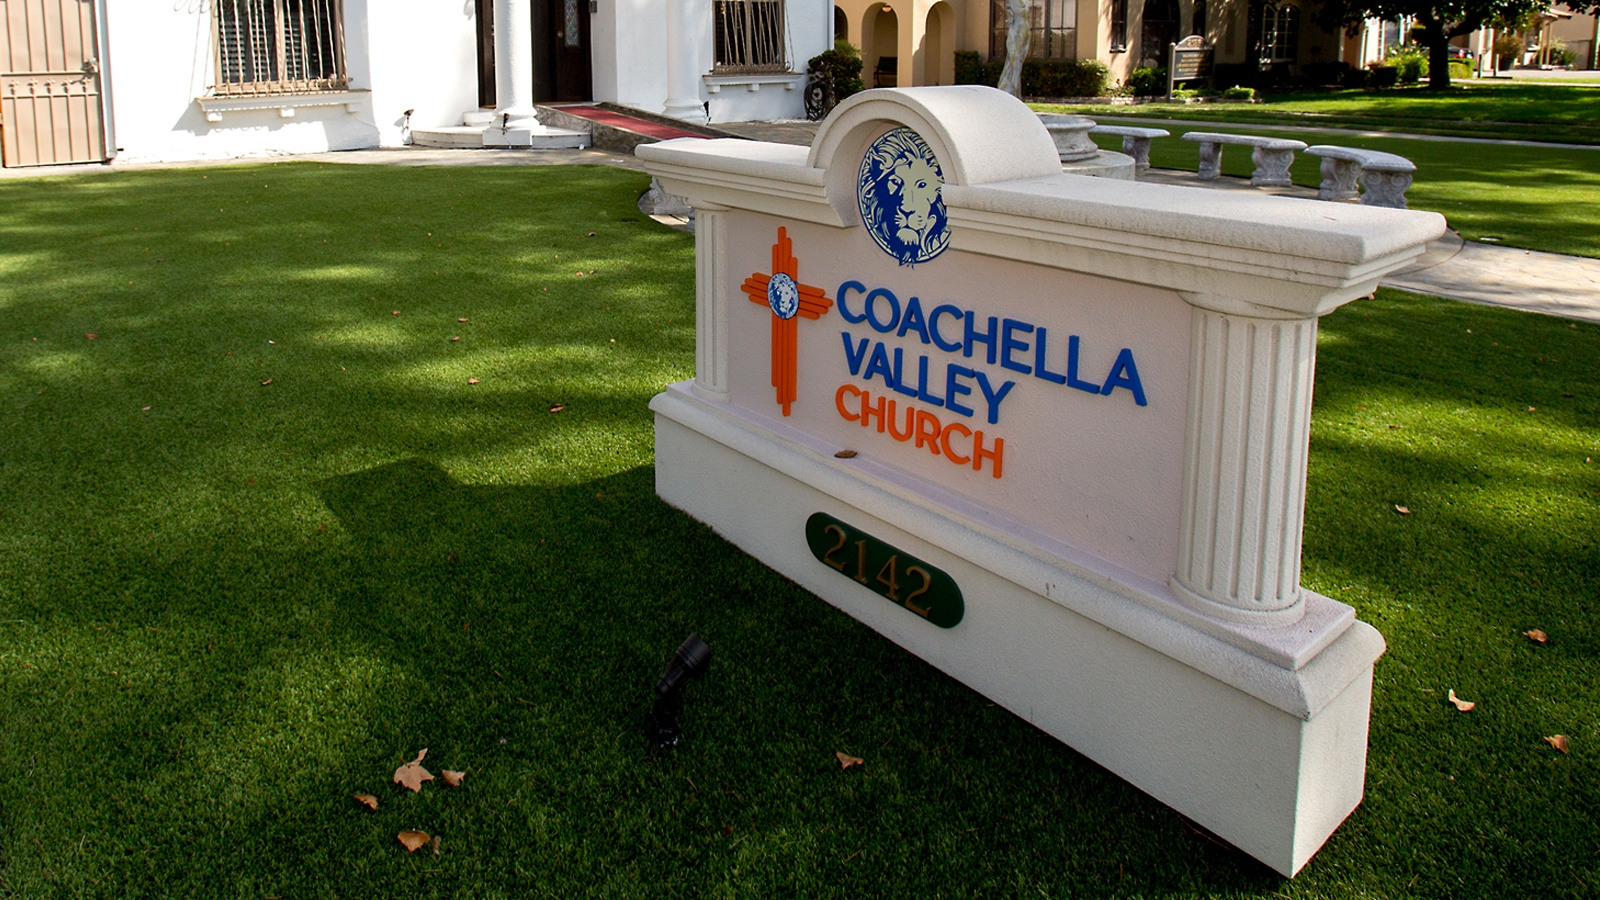 Coachella Valley Church.jpg